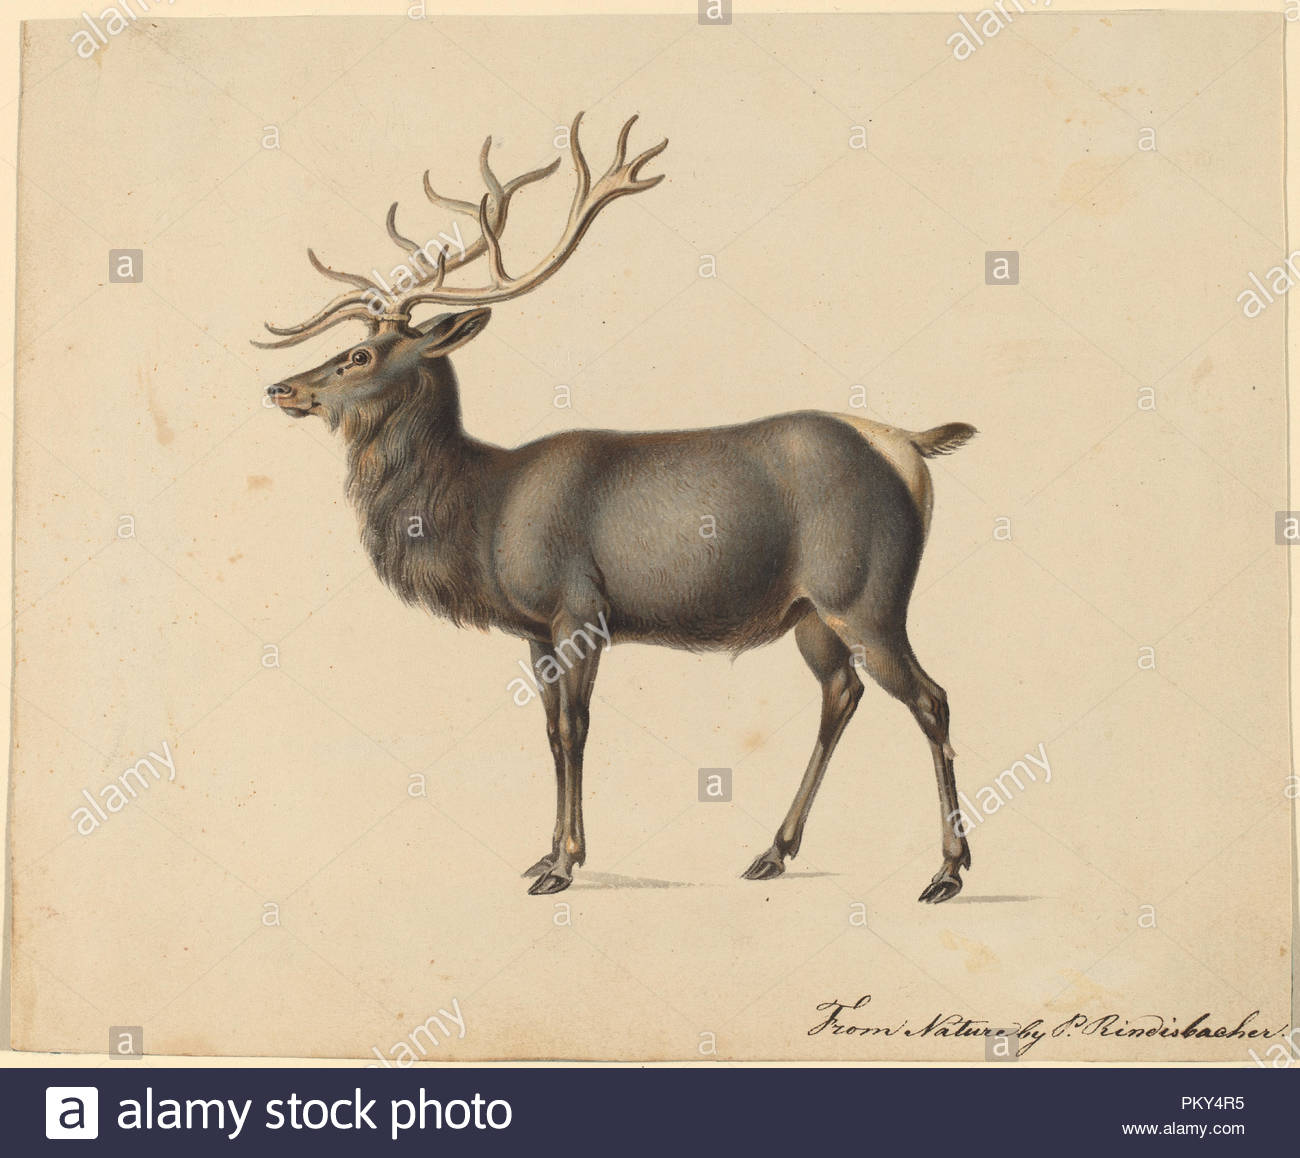 European Elk. Dimensions: sheet (approximate): 16 × 19.5 cm (6 5/16 × 7 11/16 in.). Medium: gouache on wove paper. Museum: National Gallery of Art, Washington DC. Author: Peter Rindisbacher. - Stock Image